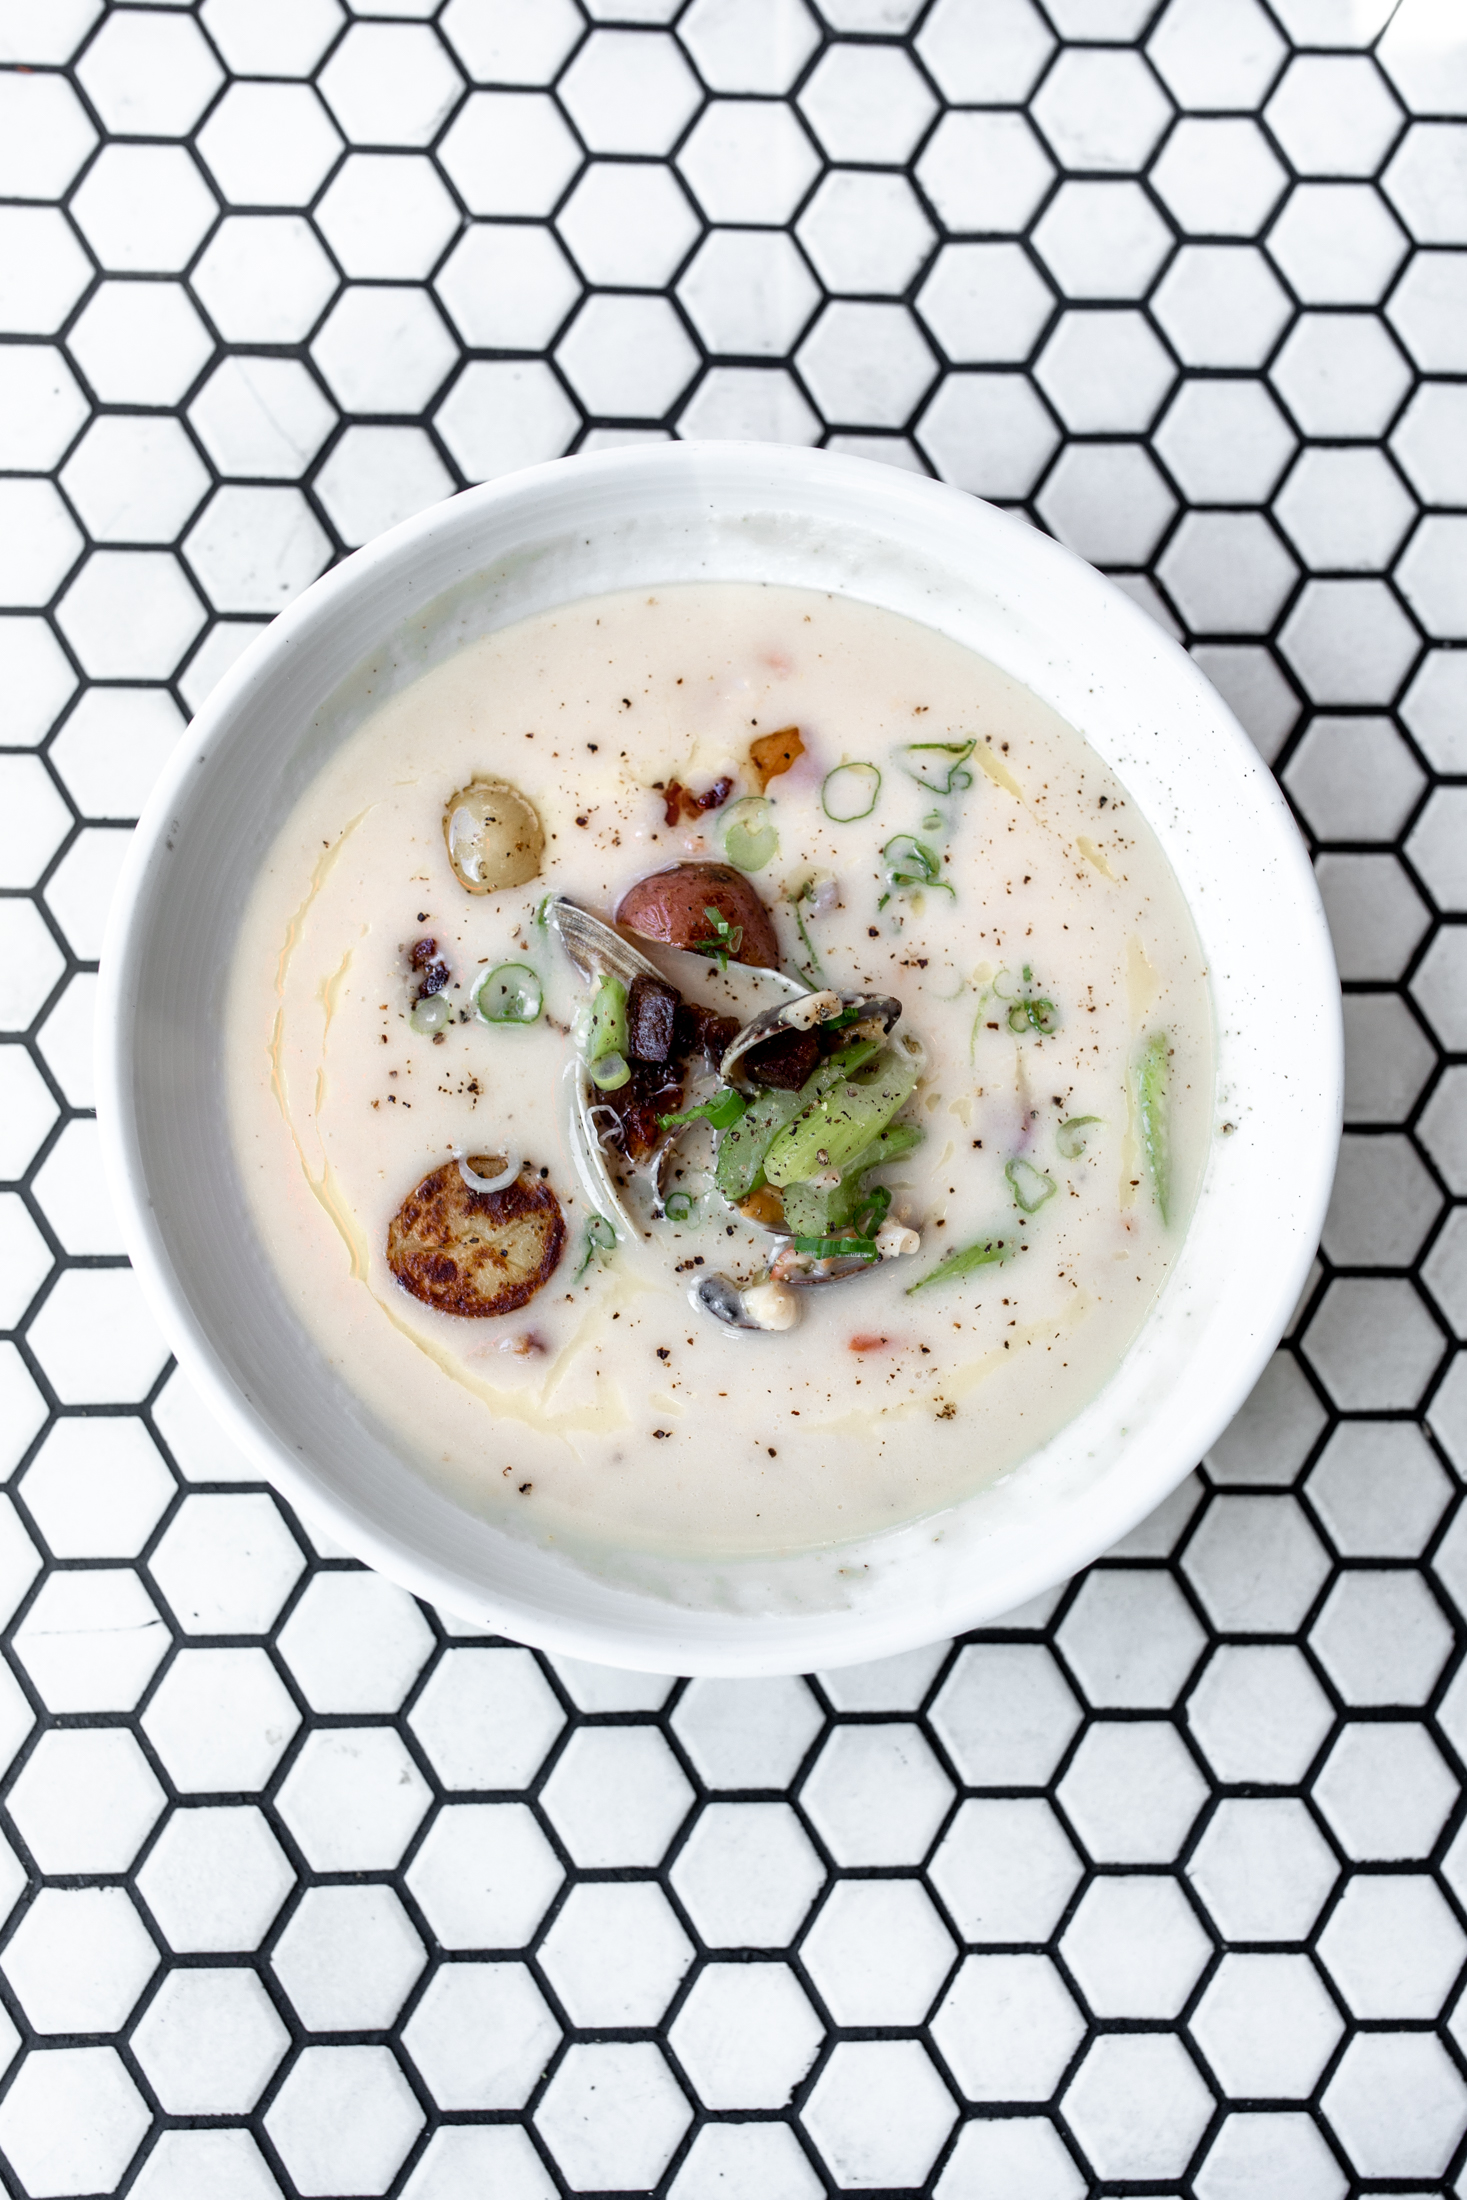 Saltie Girl holy trinity clam chowder Back Bay Boston, mass cooking with cocktail rings